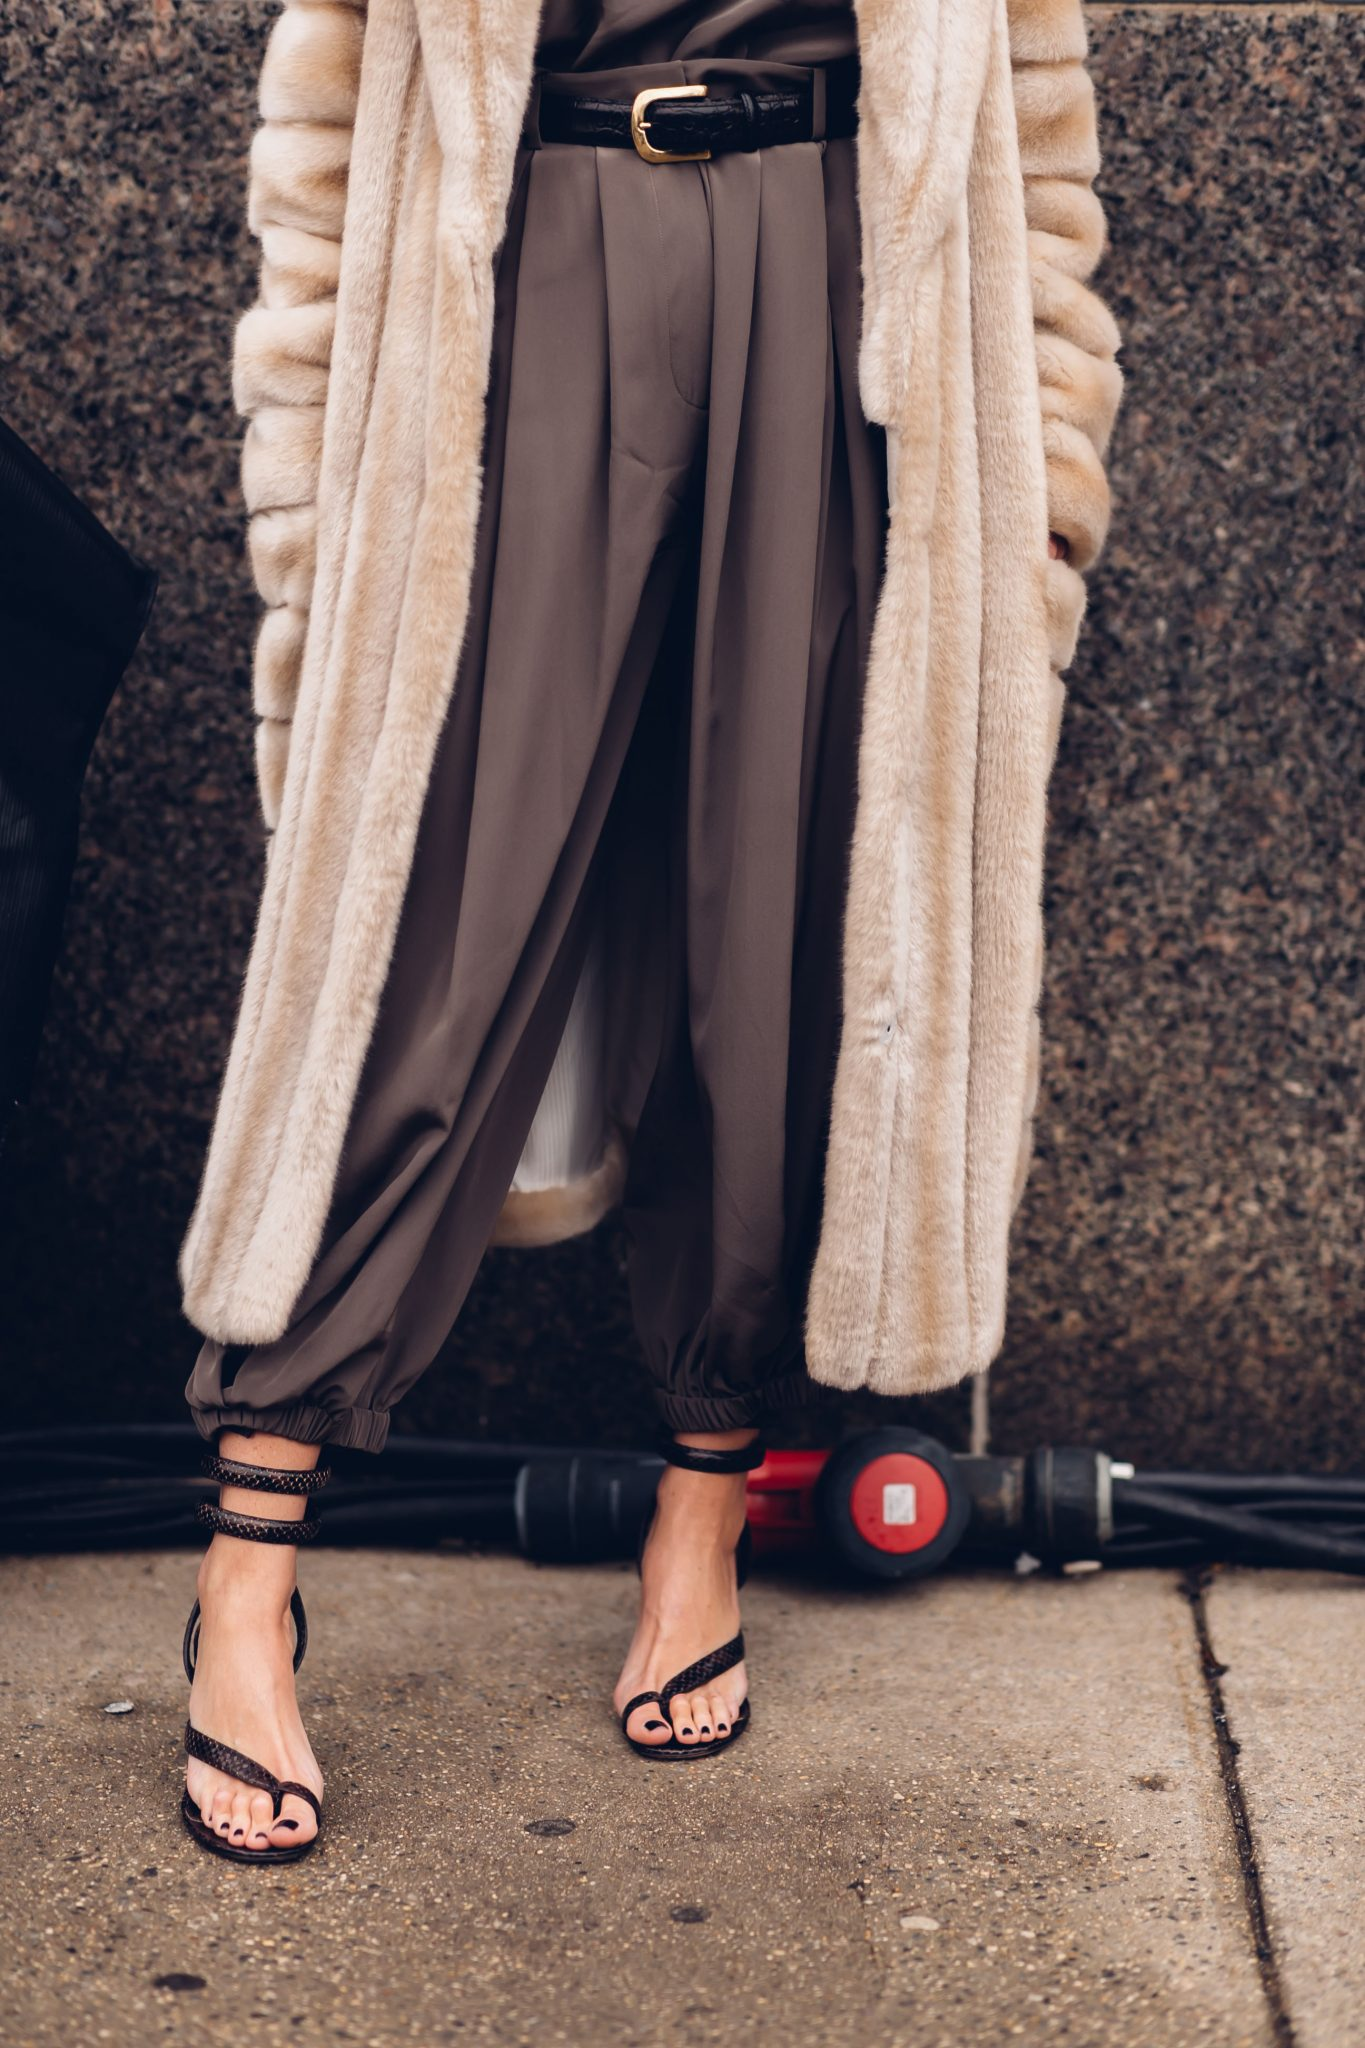 NYFW-AW20-Shoe-Edit-Final-Selects-GERALDINE-BOUBLIL-5-of-15-1365x2048